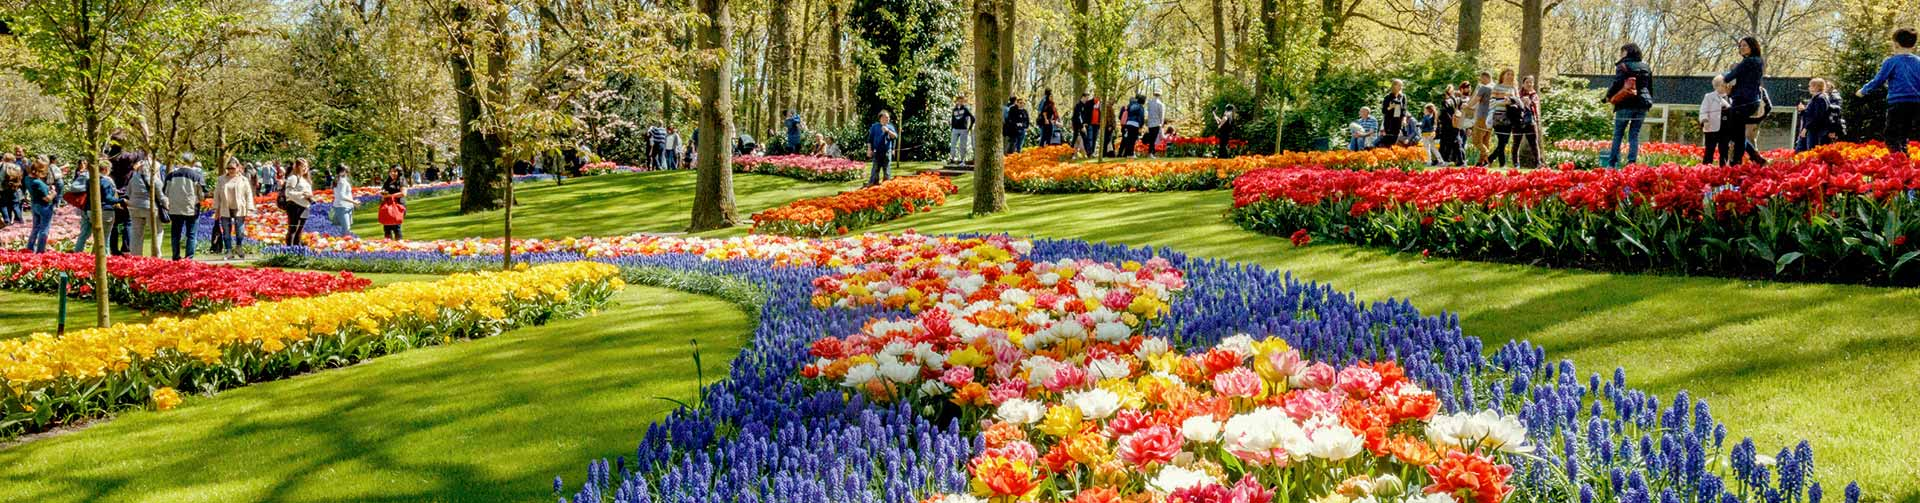 header-exclusive-keukenhof-0